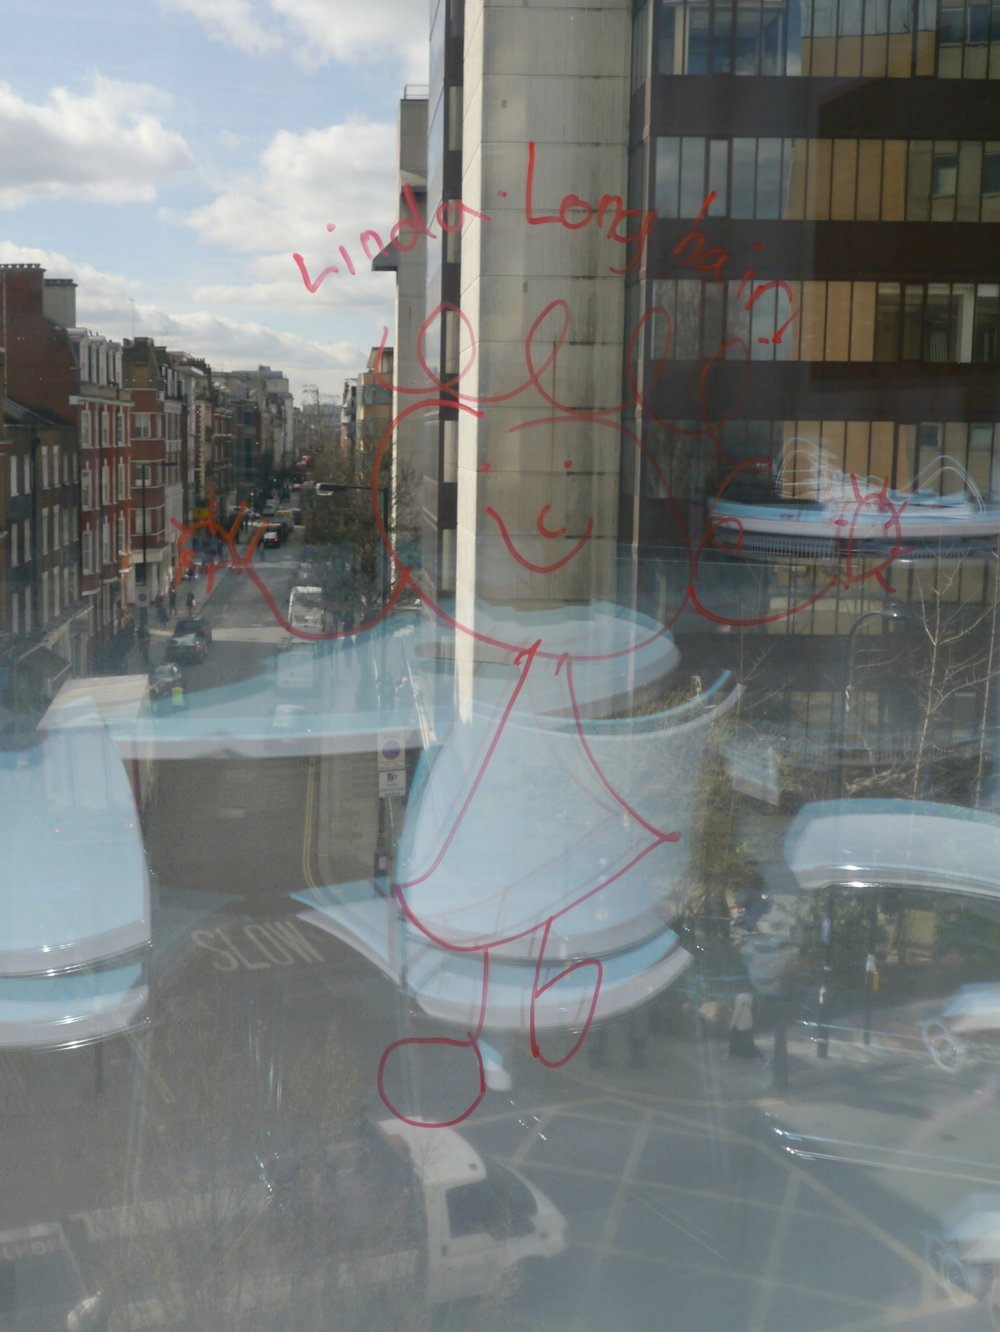 A Playfull Doodle on the Window of a Meeting Room at The Sainsbury Wellcome Centre